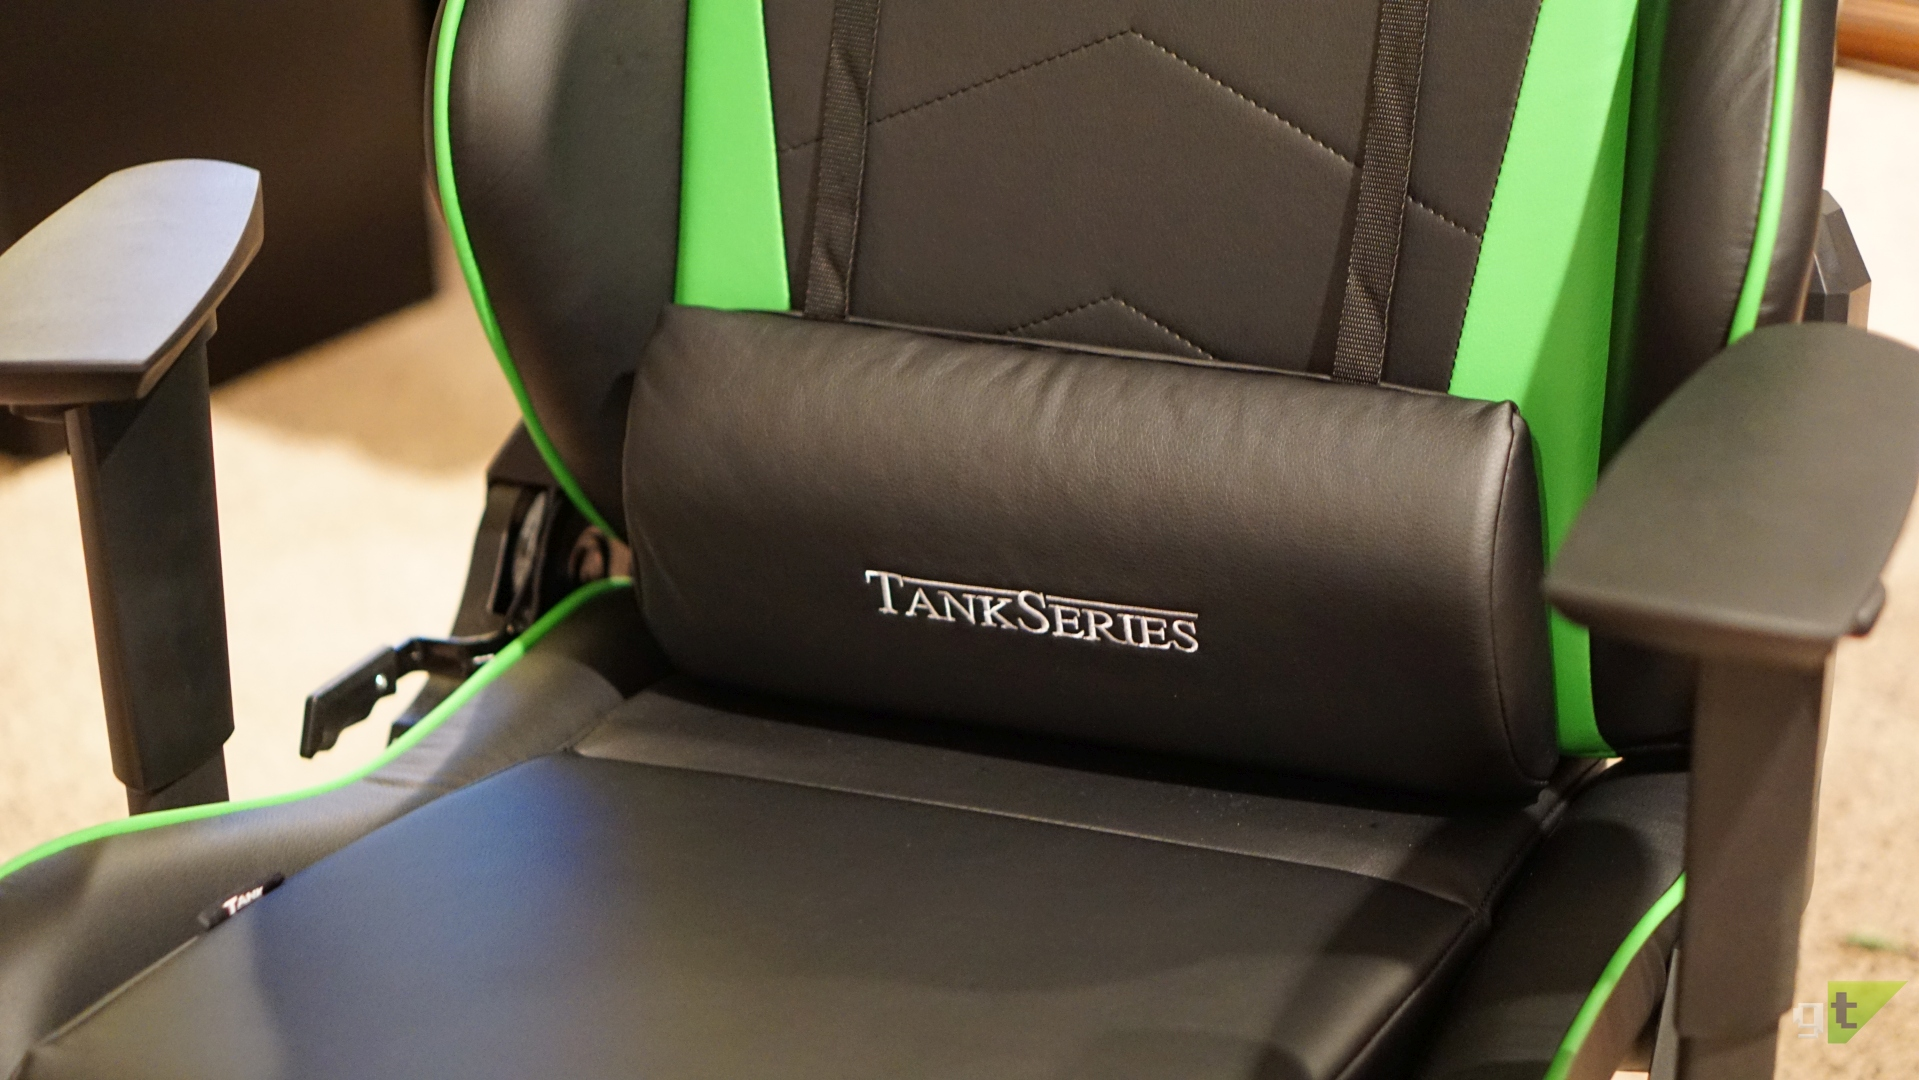 dxracer chair cover foldable desk review the tank series is your next gaming throne gametyrant dsc04306 jpg